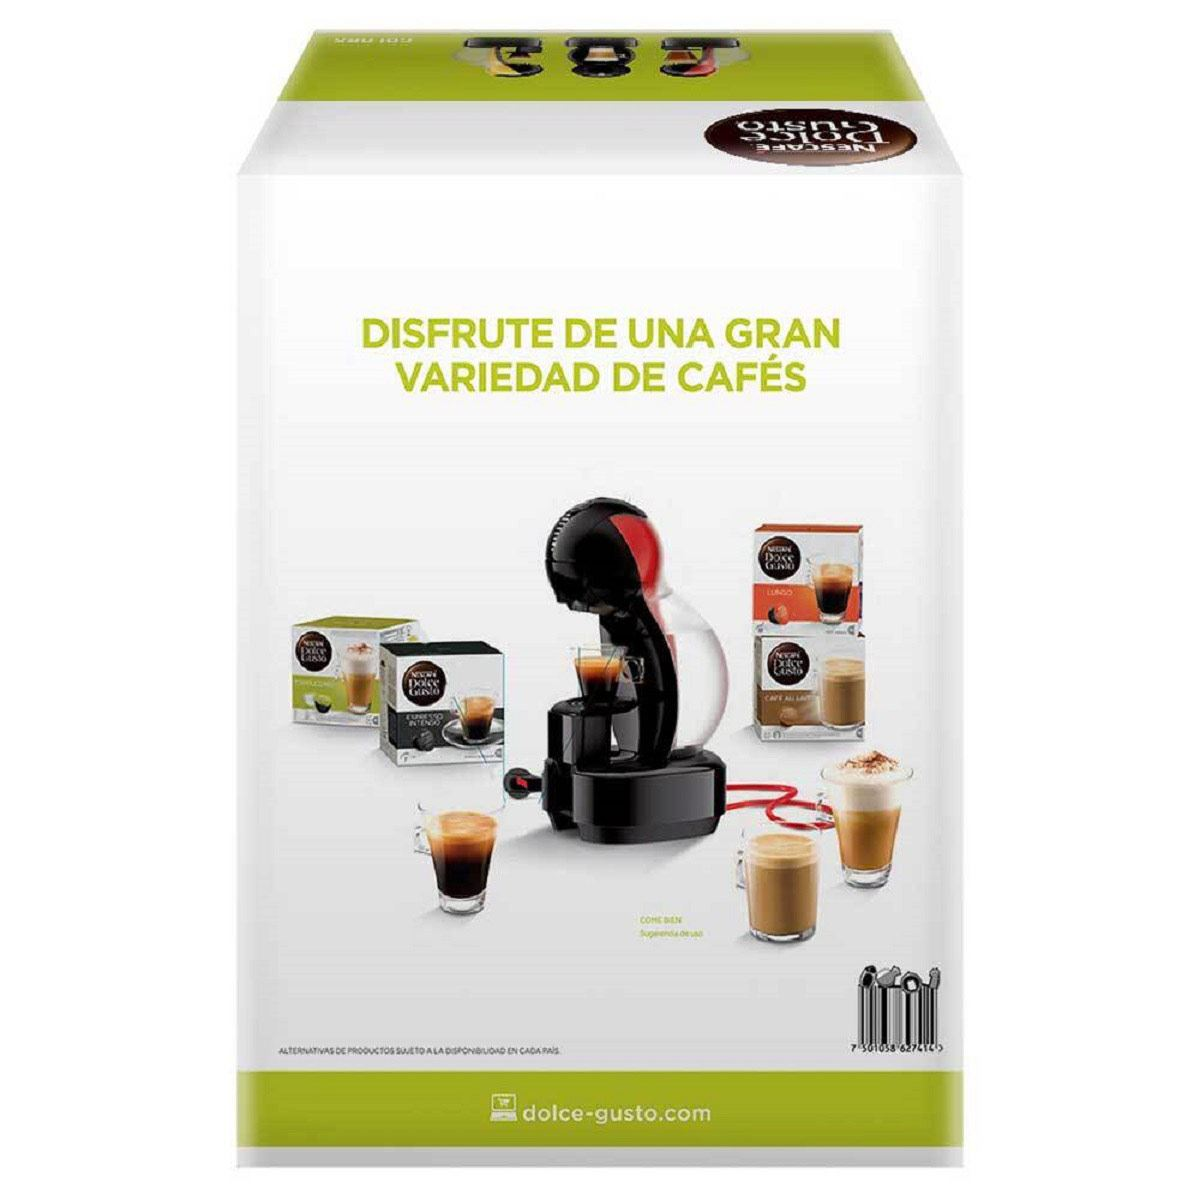 Cafetera Dolce Gusto Colors Negra